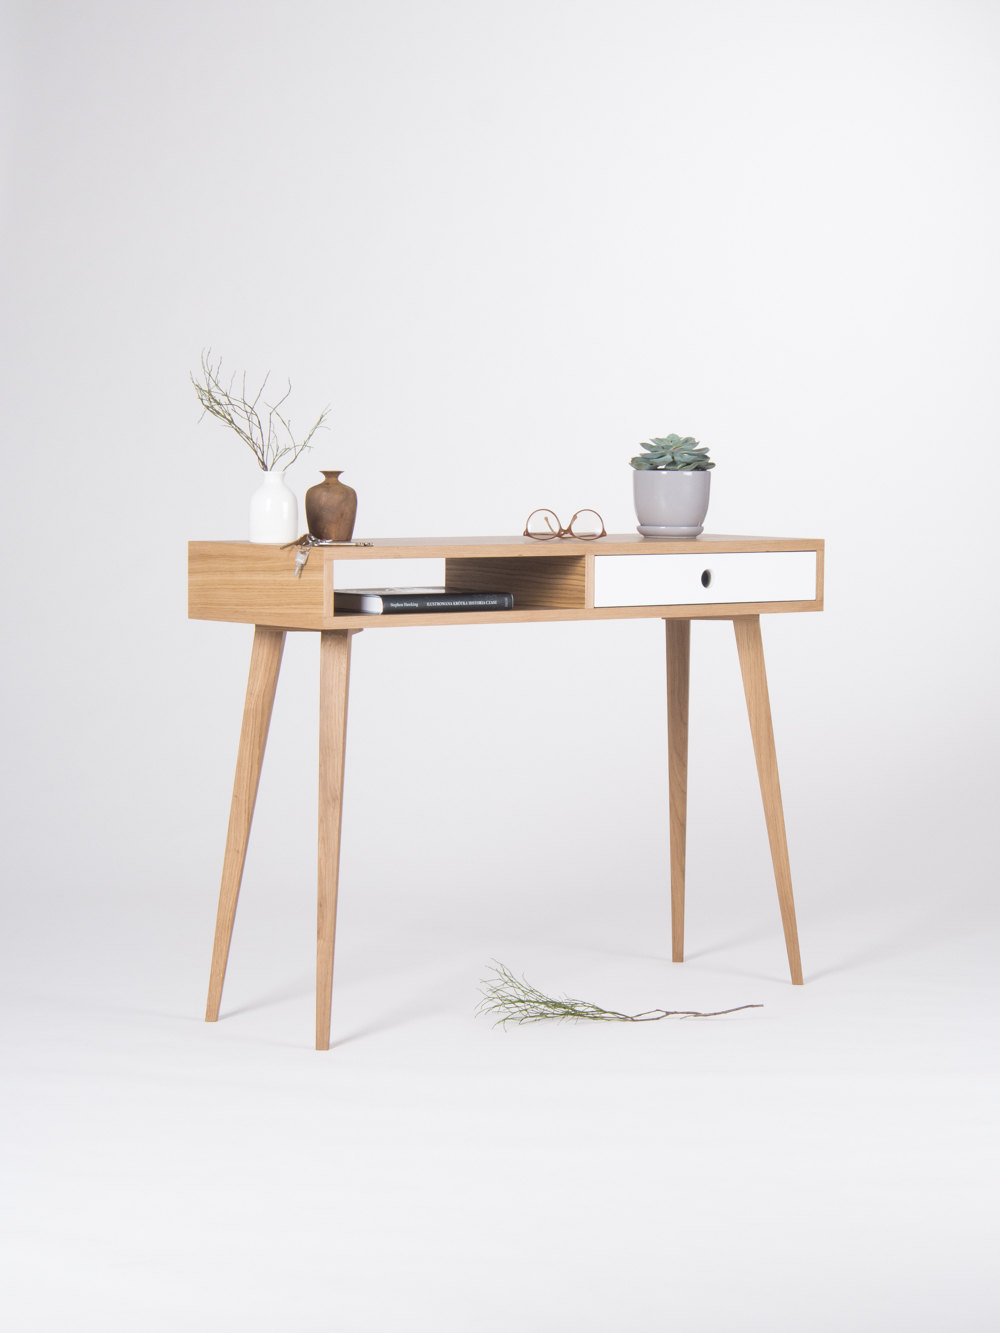 Picture of: Small Console Table Entryway Table With White Drawer And Open Shelf Mid Century Modern Made Of Oak Wood Sold By Mo Woodwork On Storenvy